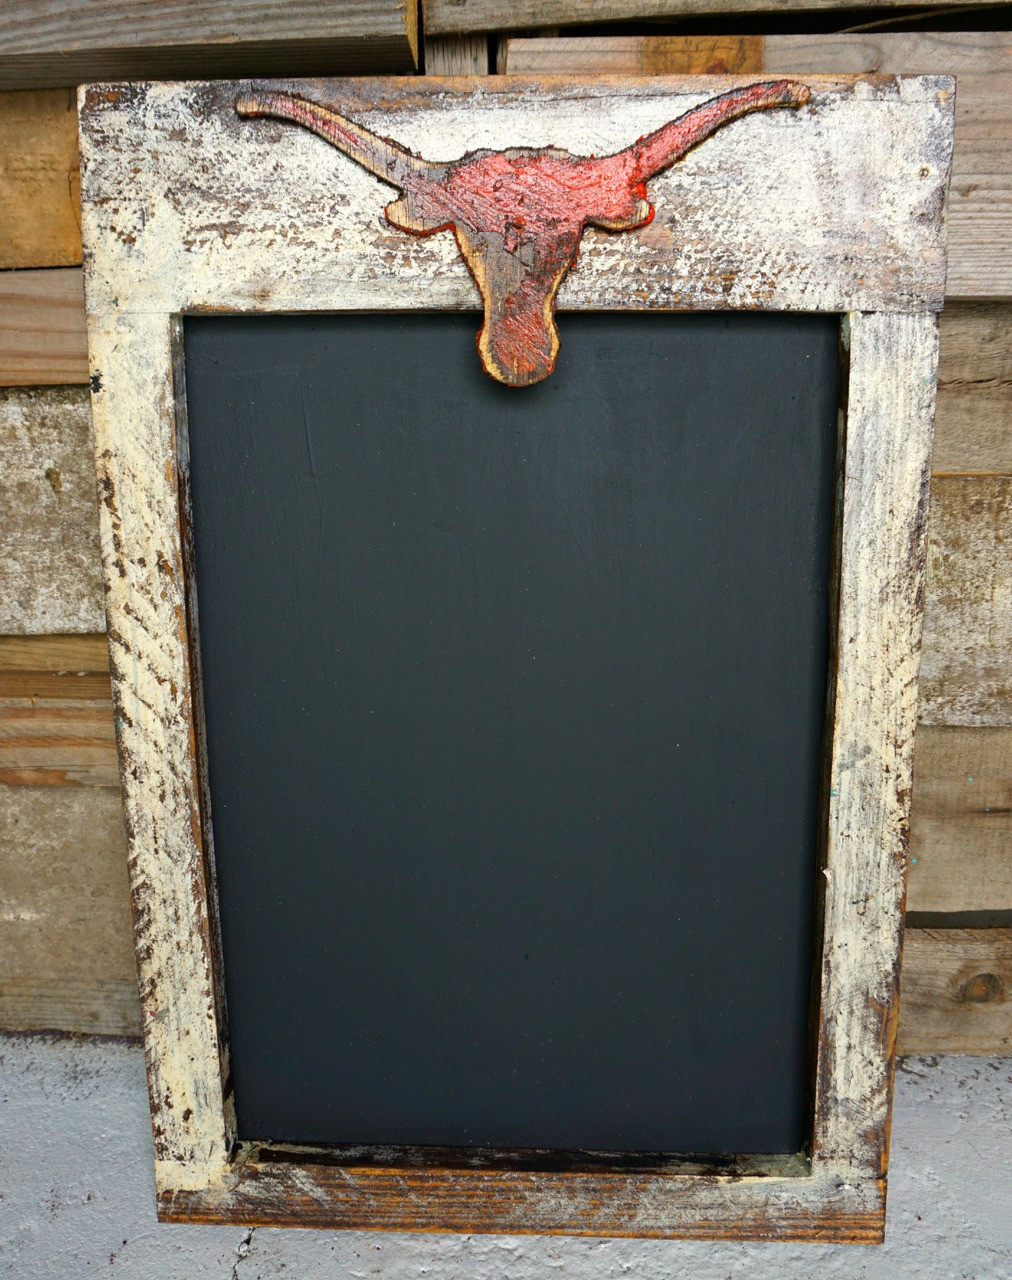 Longhorns home decor 28 images longhorn home decor co op longhorns home decor office Home decor stores utah county